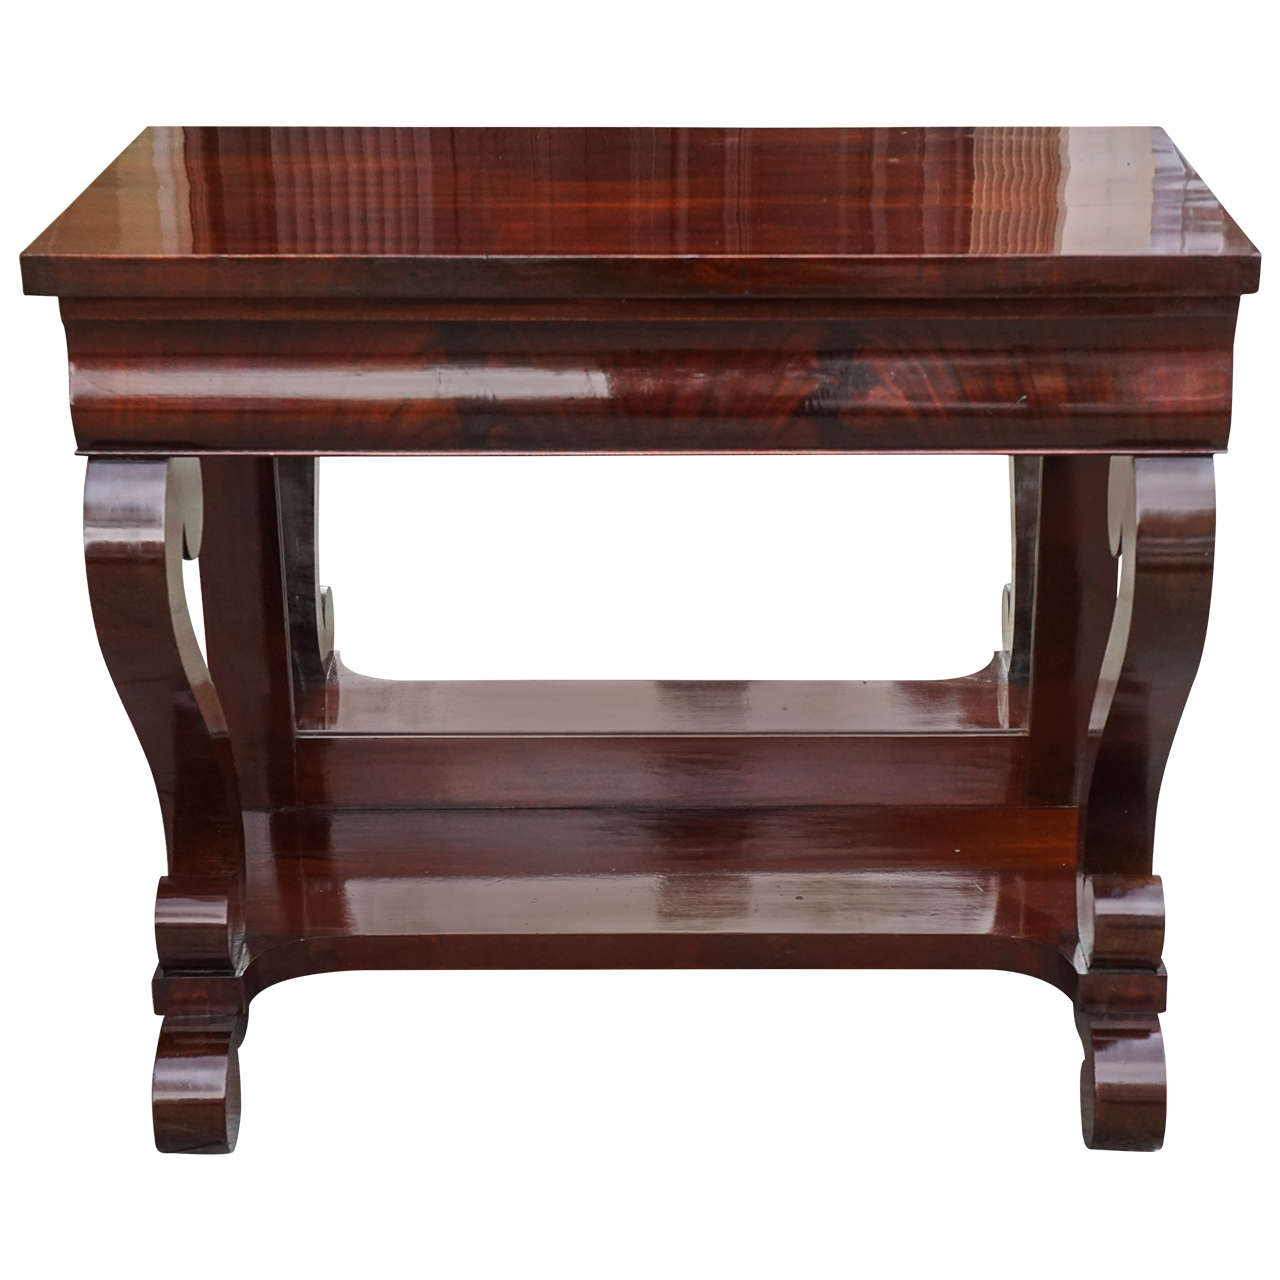 19th Century Mahogany American Empire Pier Table 1